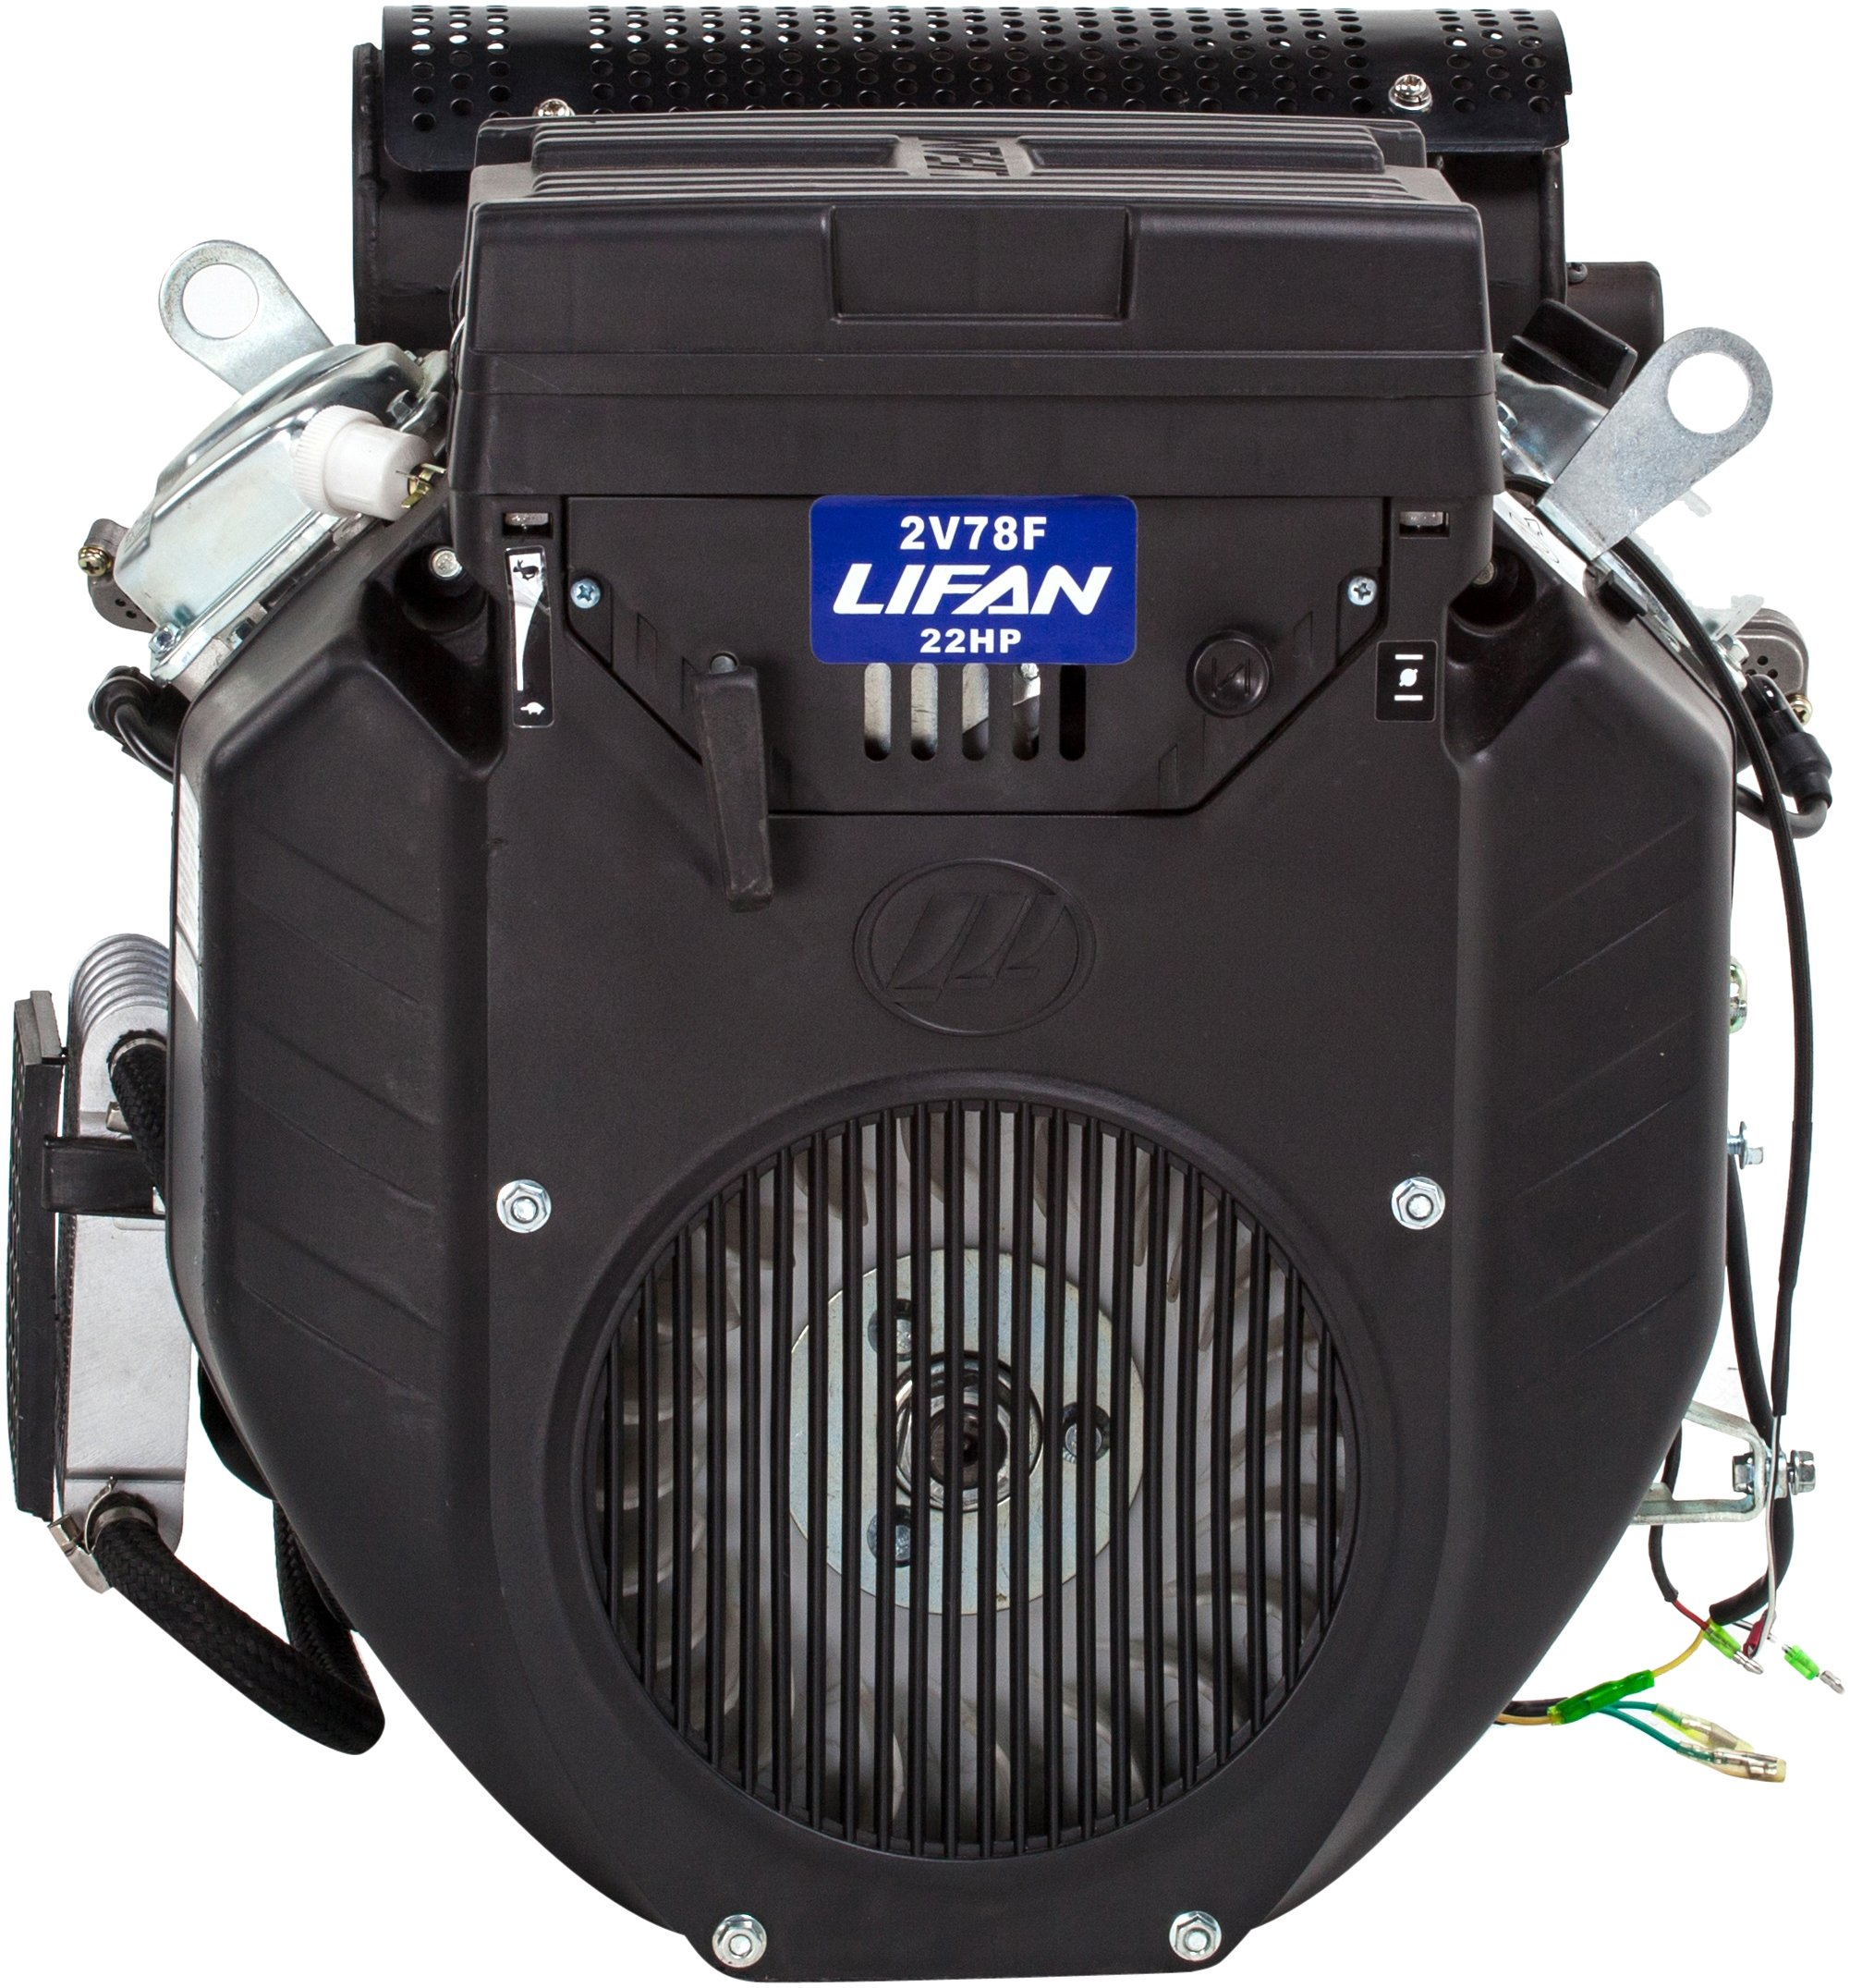 Lifan LF2V78-2DQS Industrial Grade 22 HP 688cc V-Twin 4-Stroke OHV Gas Engine with Electric Start and 1-Inch Shaft